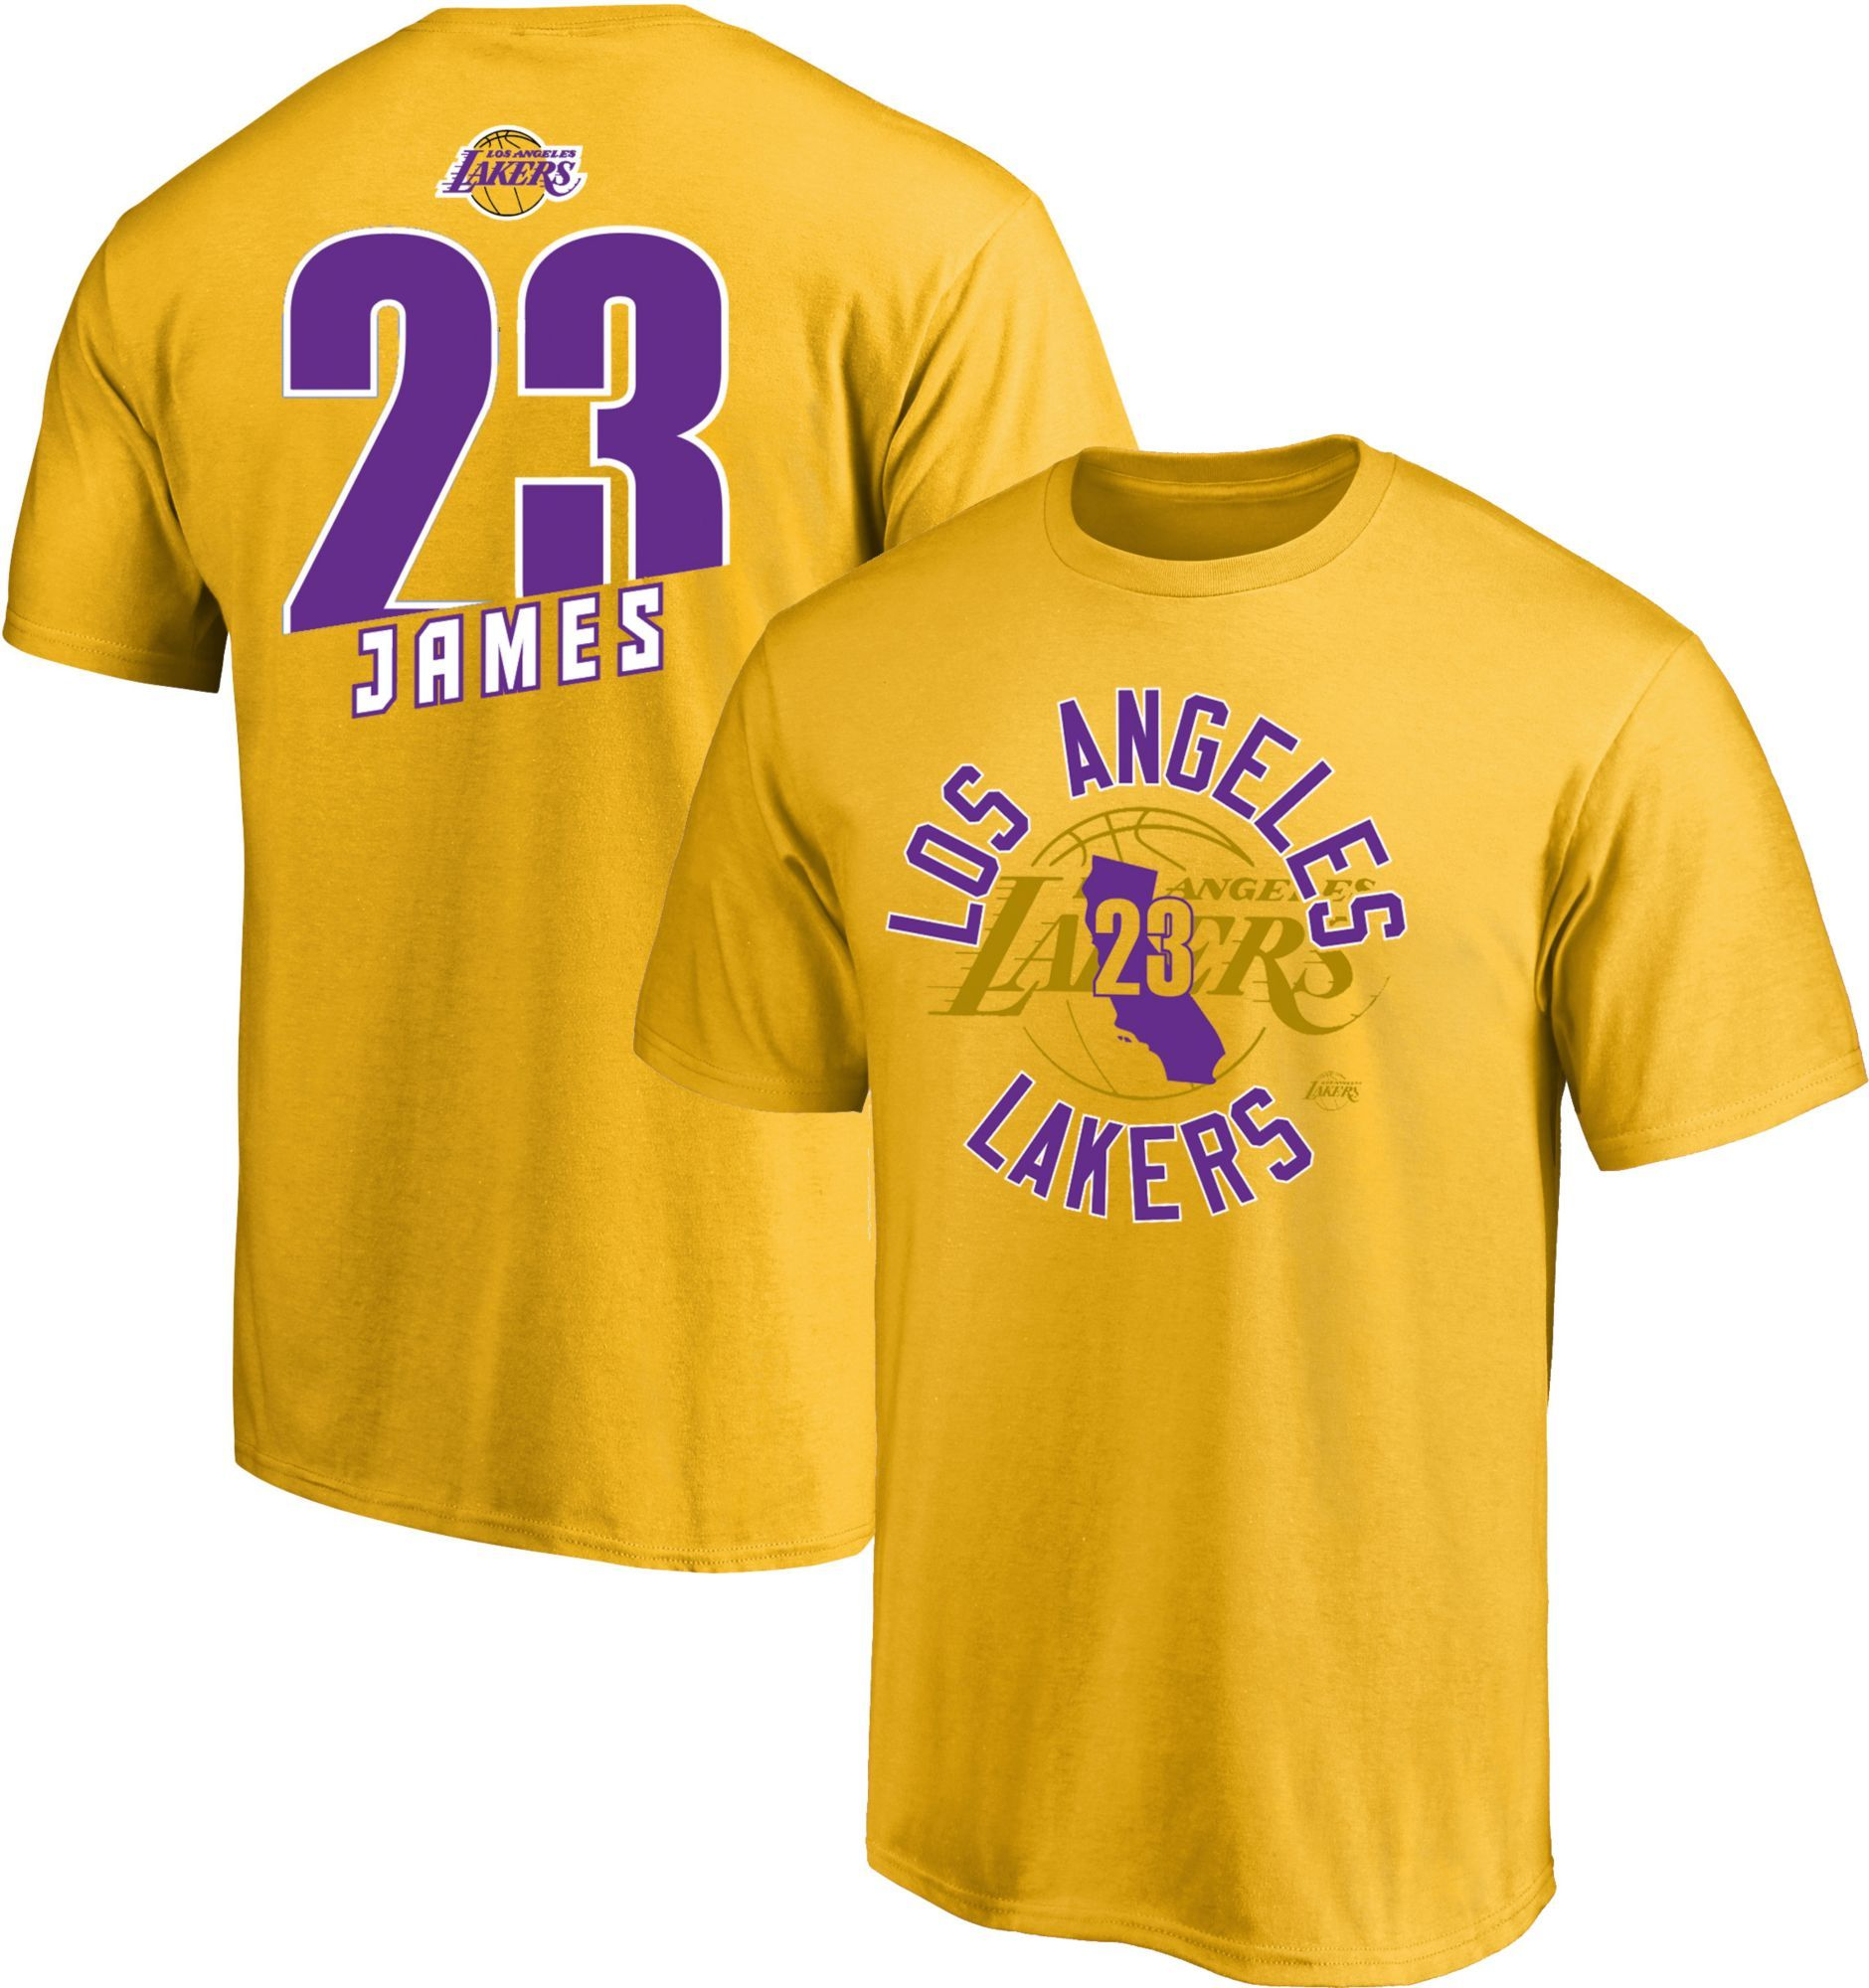 4dd8253bb4 Majestic Men's Los Angeles Lakers LeBron James #23 Gold T-Shirt, Yellow